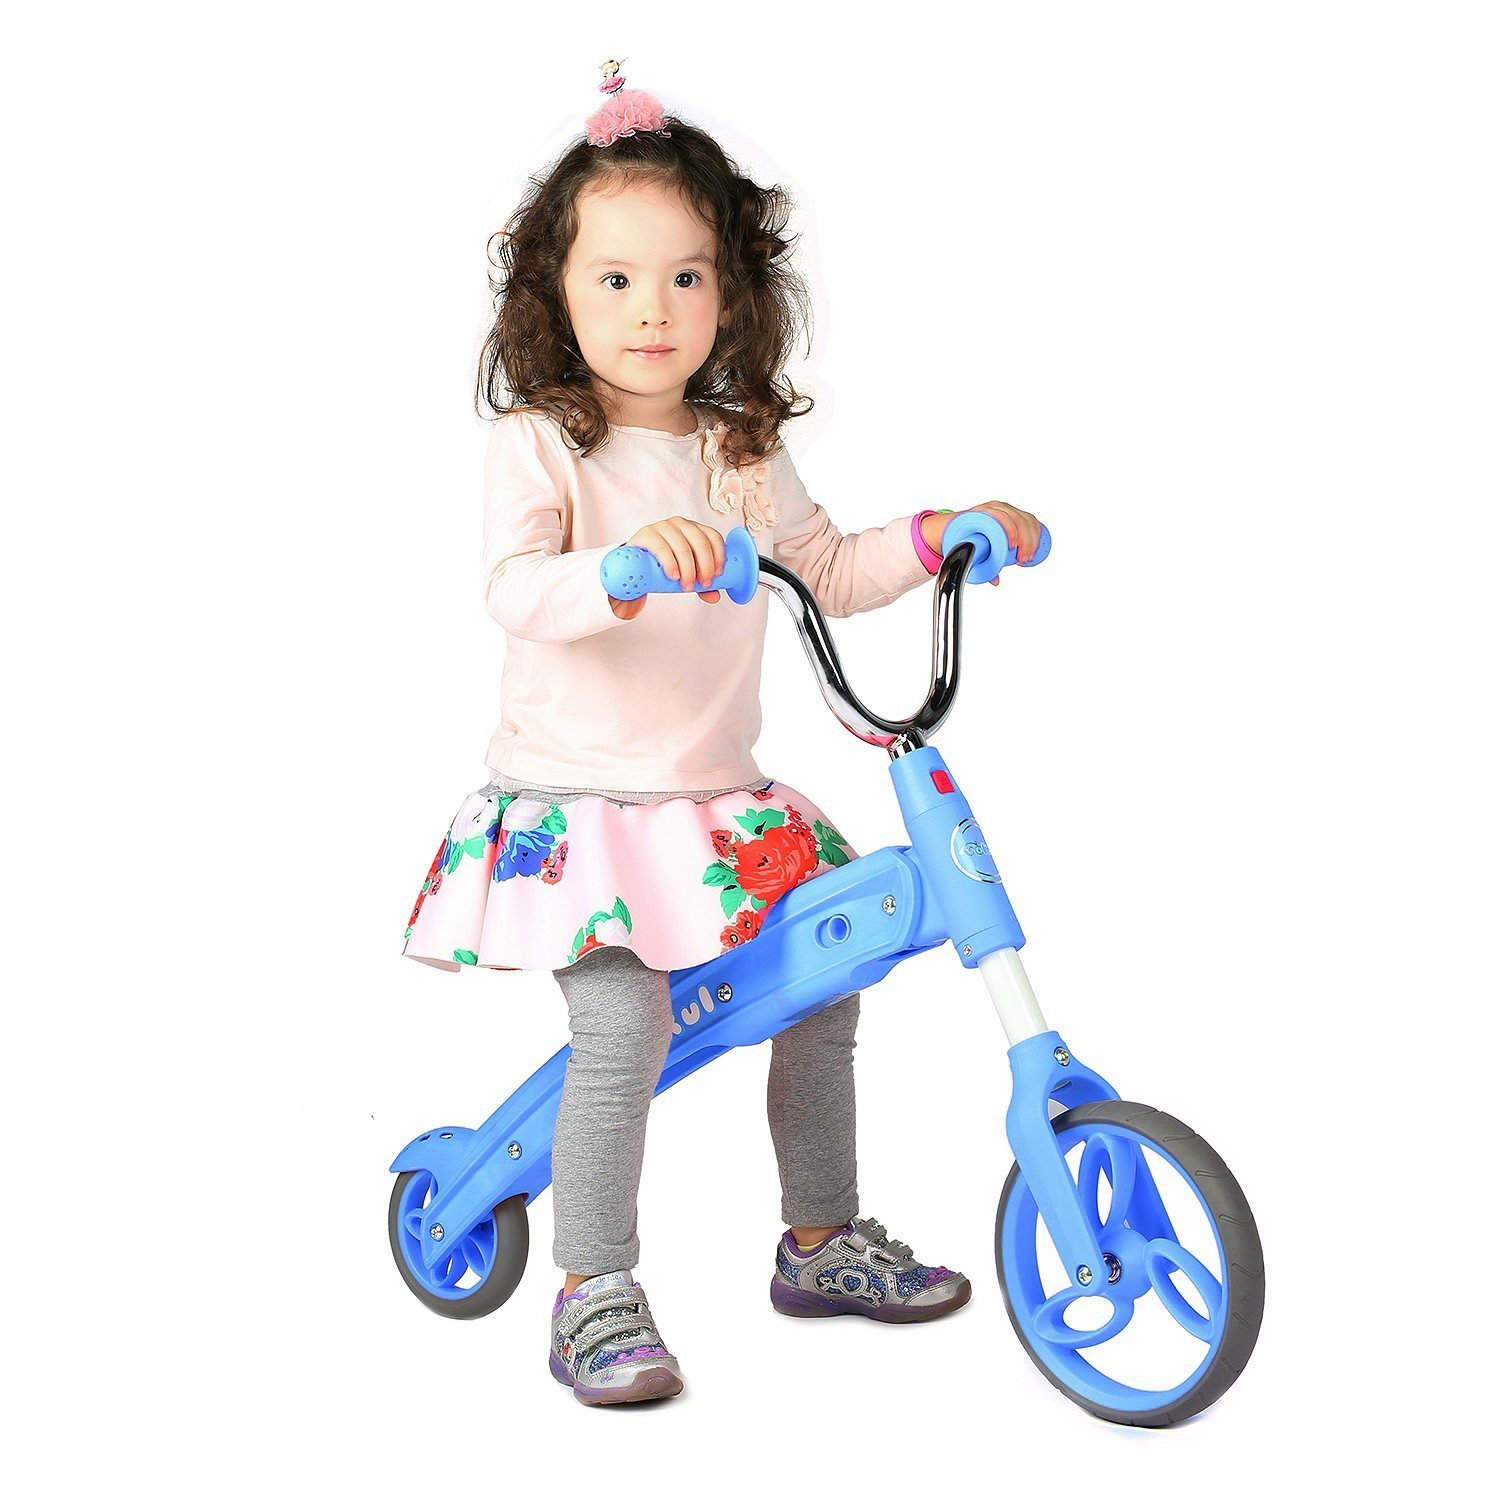 Vokul GX02 Kid Balance Bike Toddler Scooter Without Pedal for Age 3-5/Blue